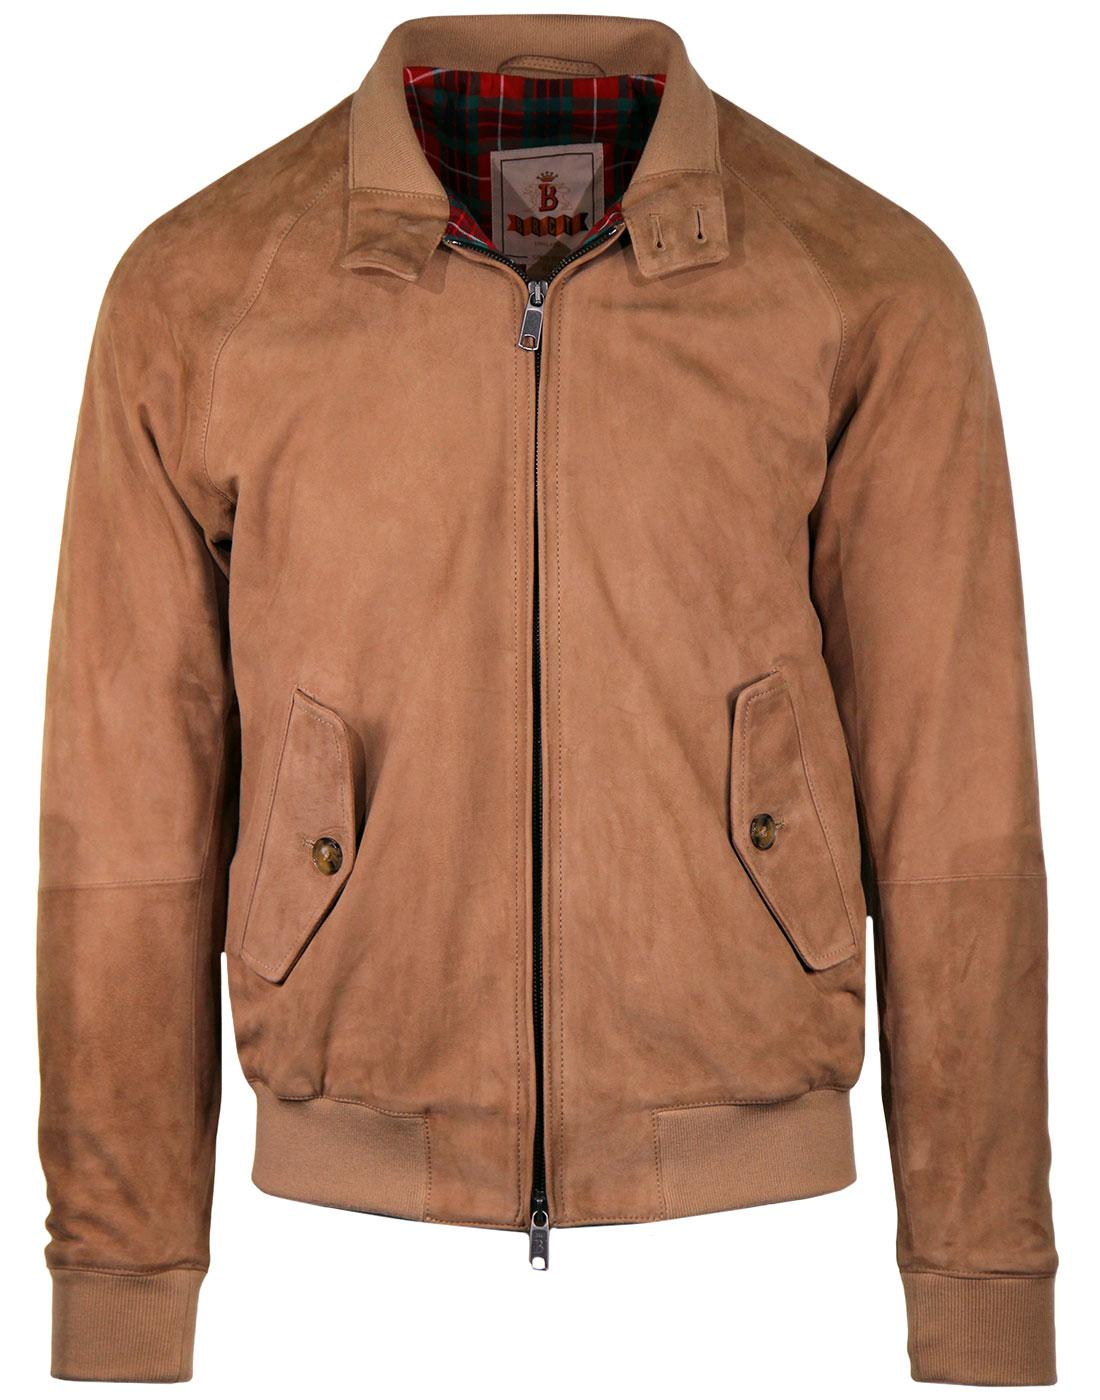 BARACUTA G9 Suede Retro Harrington Jacket SAND